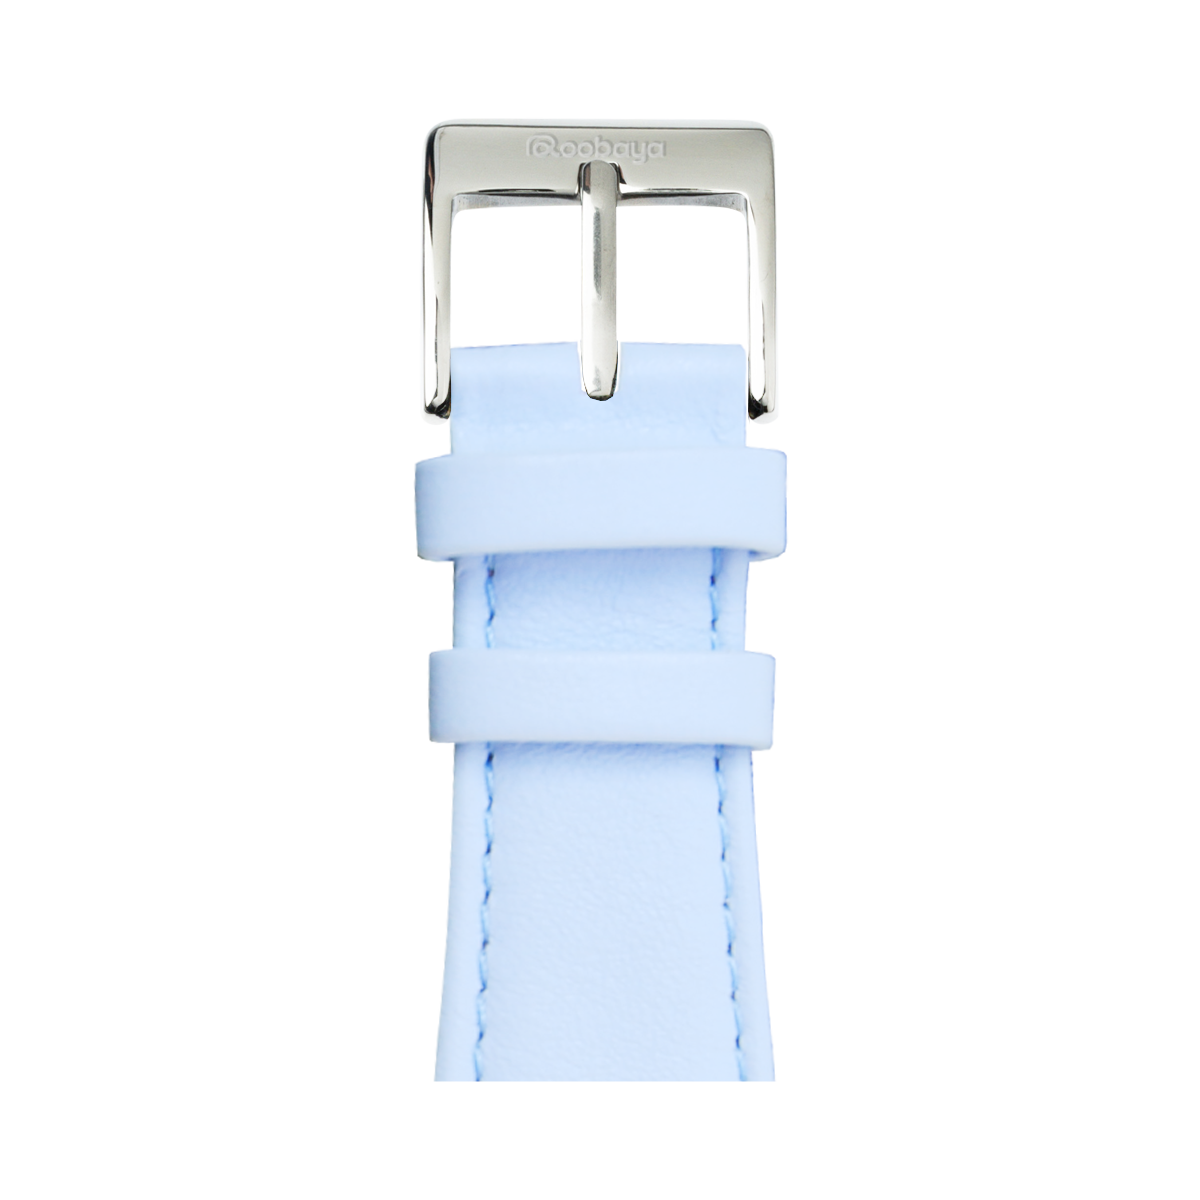 Limited Edition Nappa Leder Armband in Hellblau für die Apple Watch Series 1, 2, 3 & 4 in 38mm, 40mm, 42mm & 44mm Gehäusegröße von Roobaya - Made in Germany